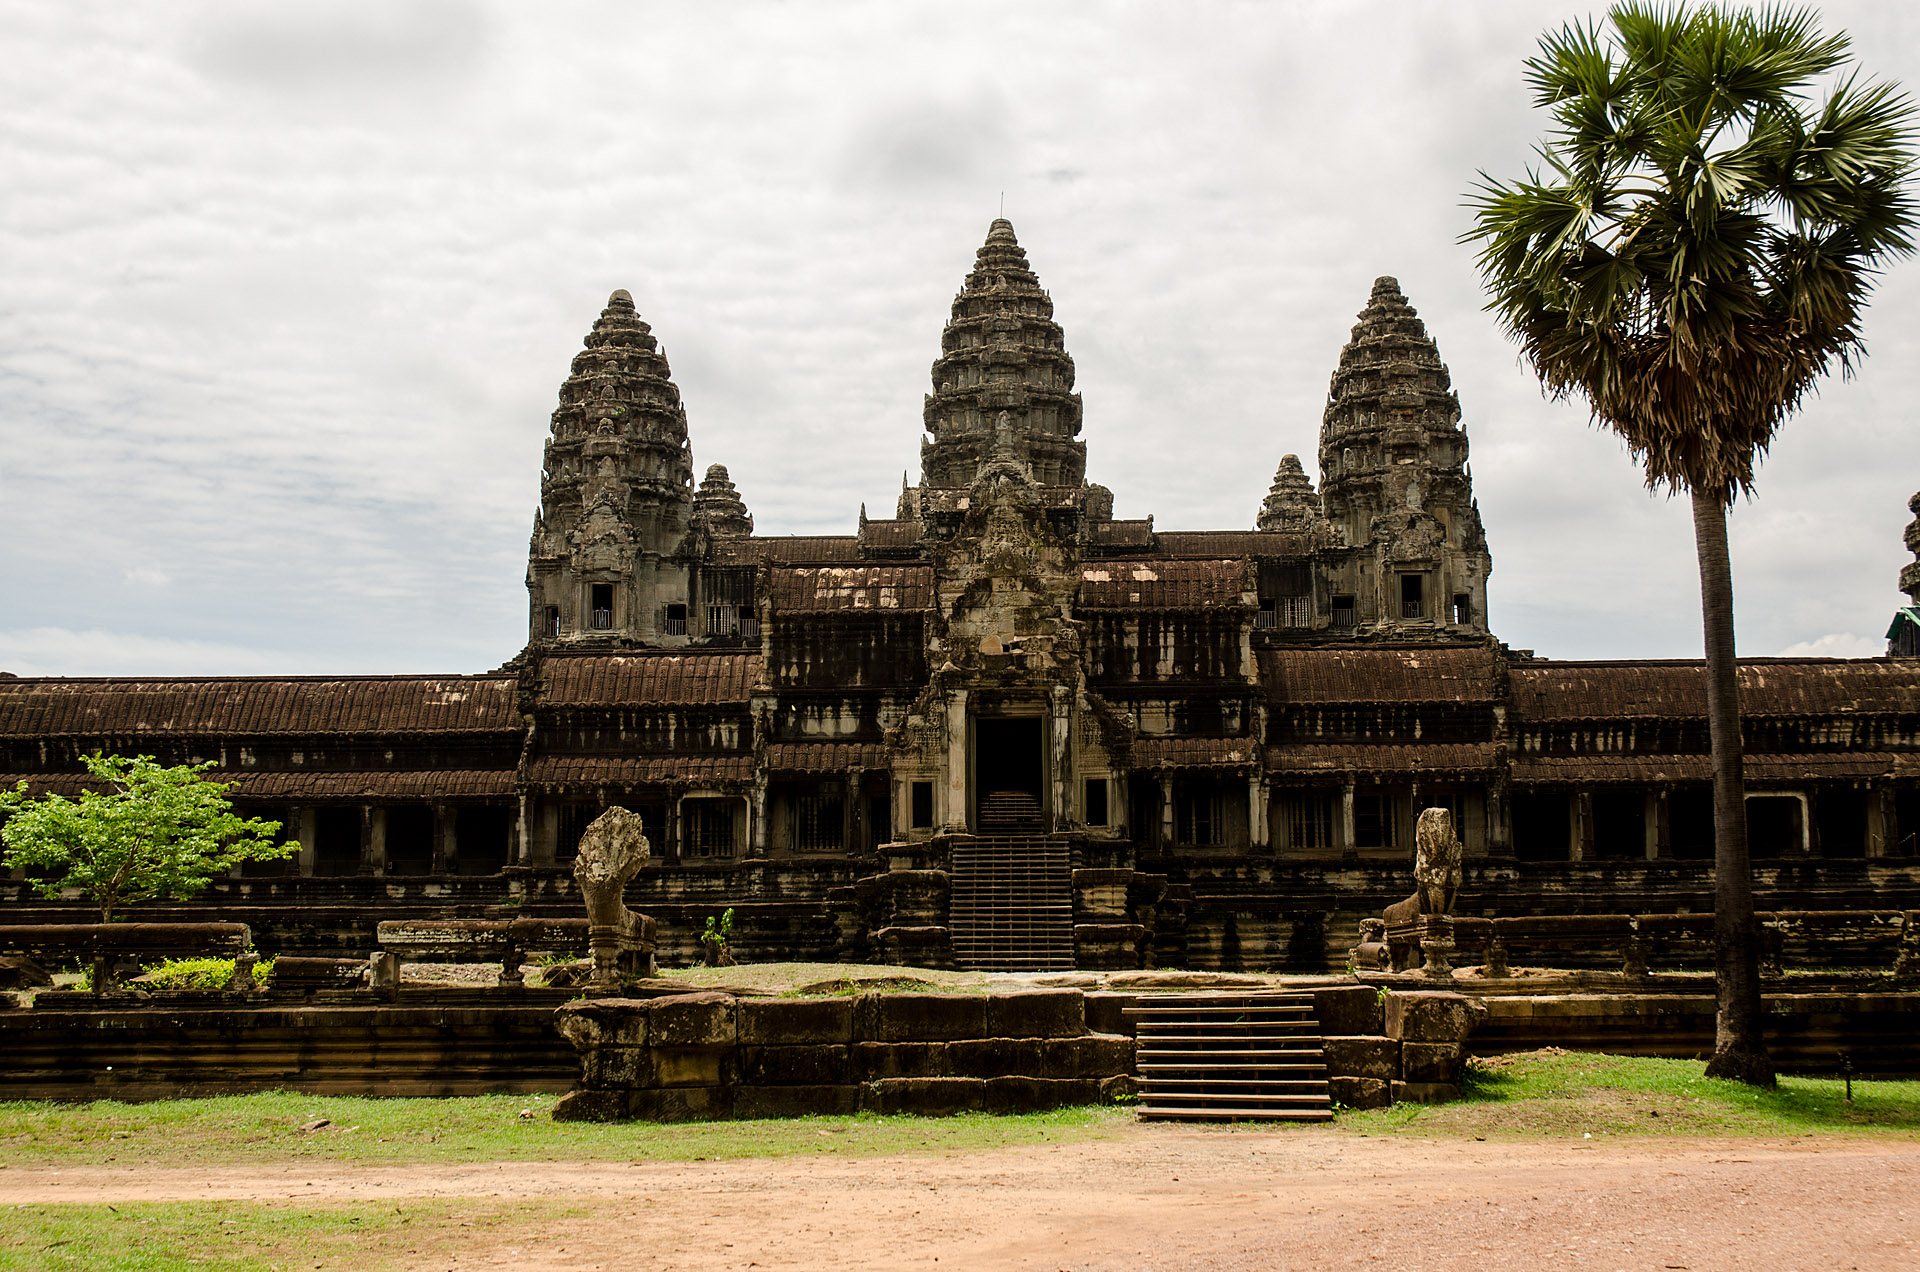 Angkor Wat from south gate